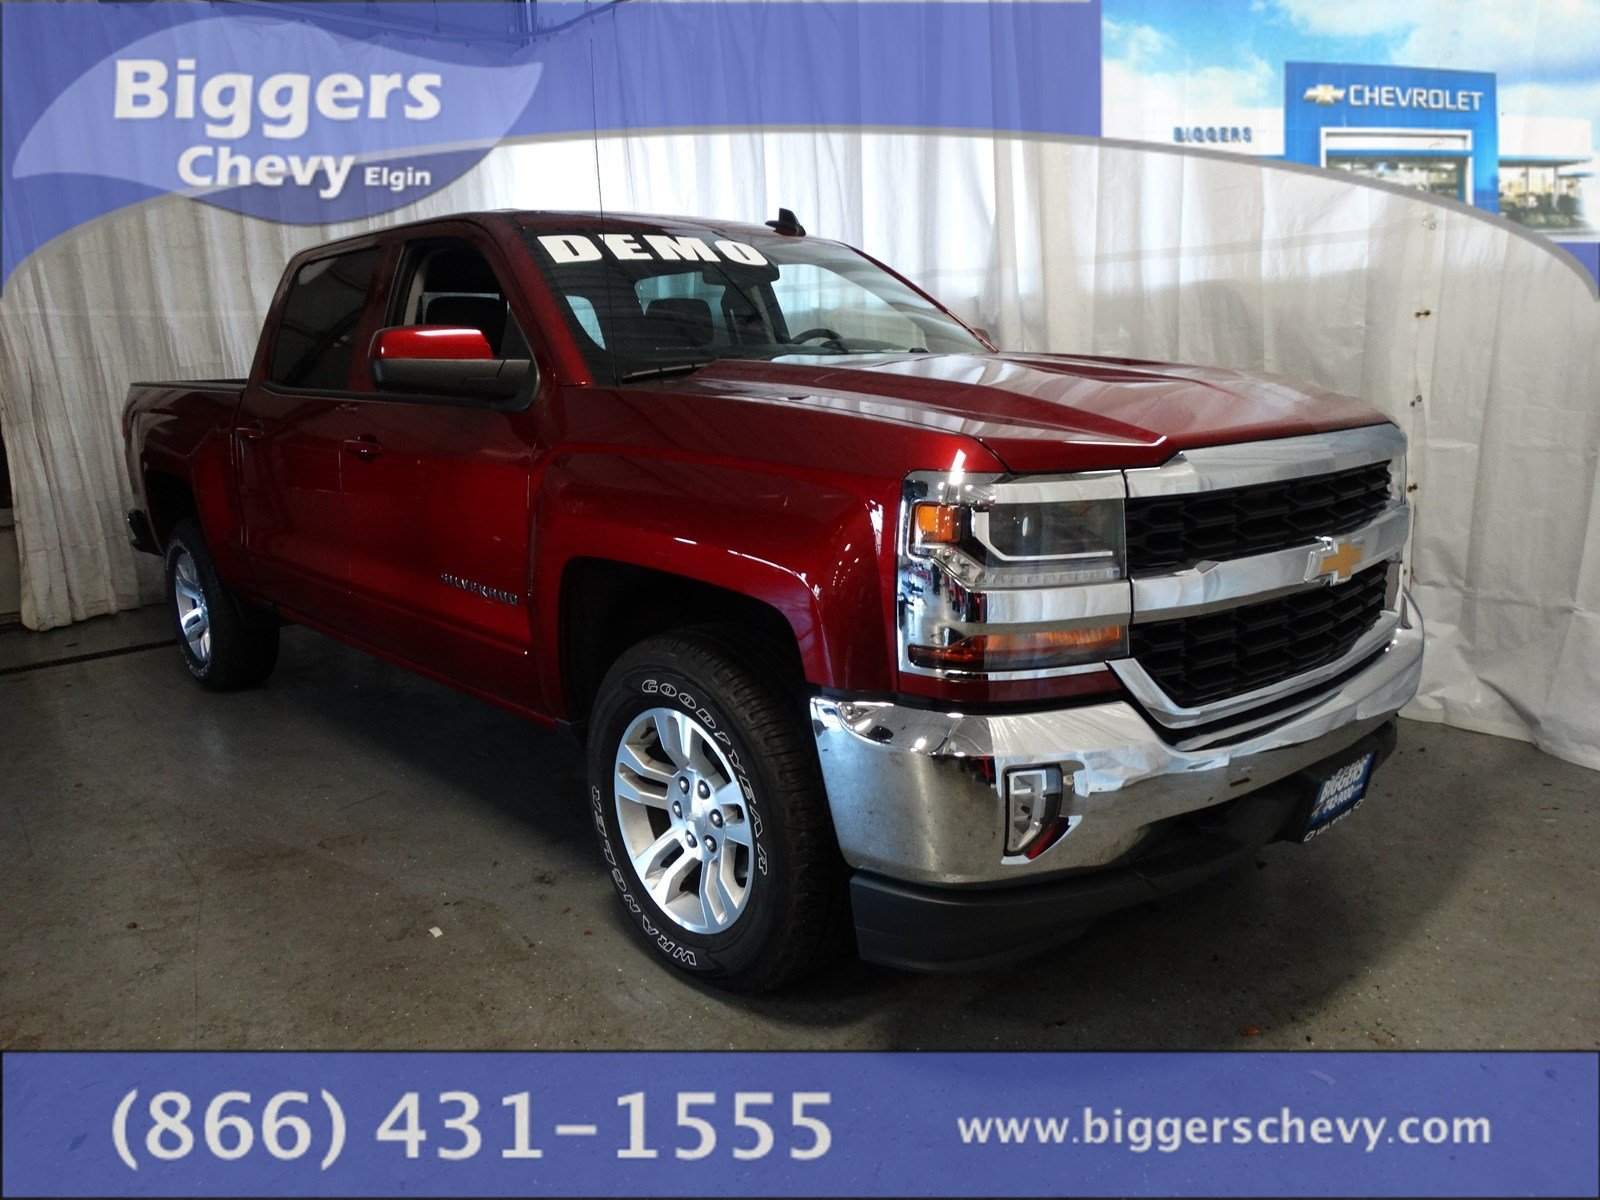 Chevy deals and offers